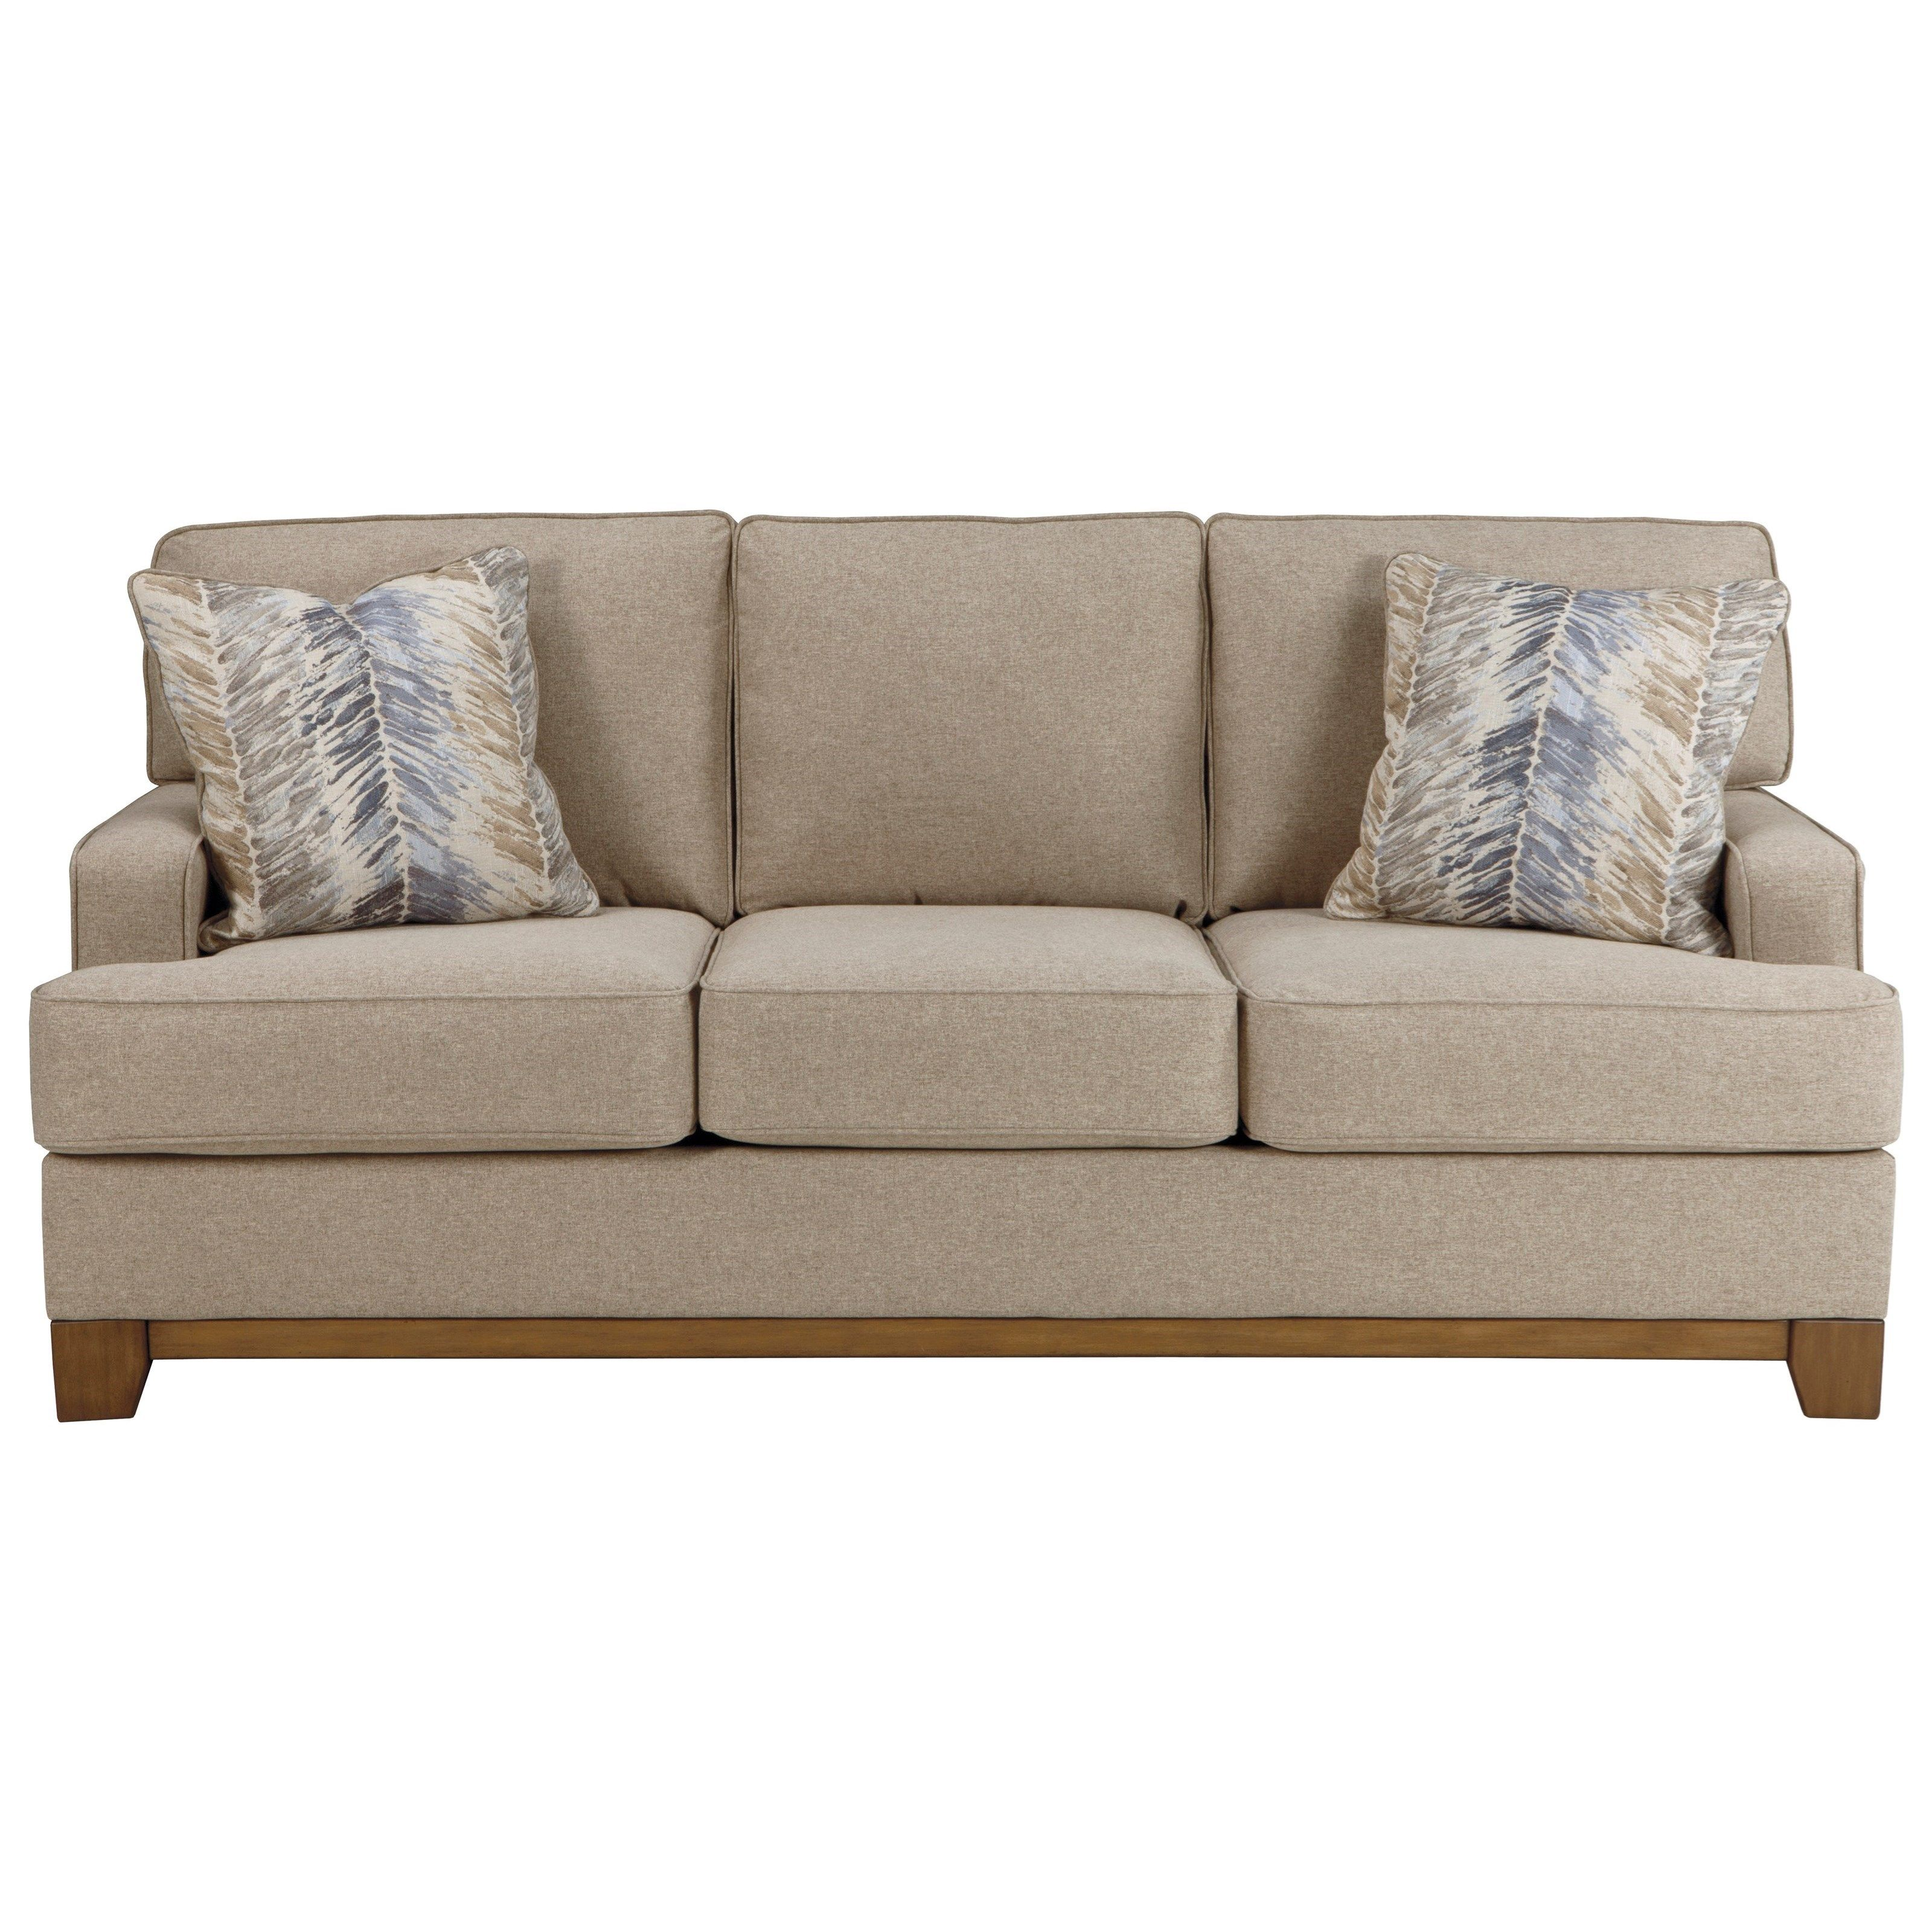 Best Hillsway Contemporary Sofa With Exposed Wood Front Rail By Benchcraft Living Rooms And Room 400 x 300